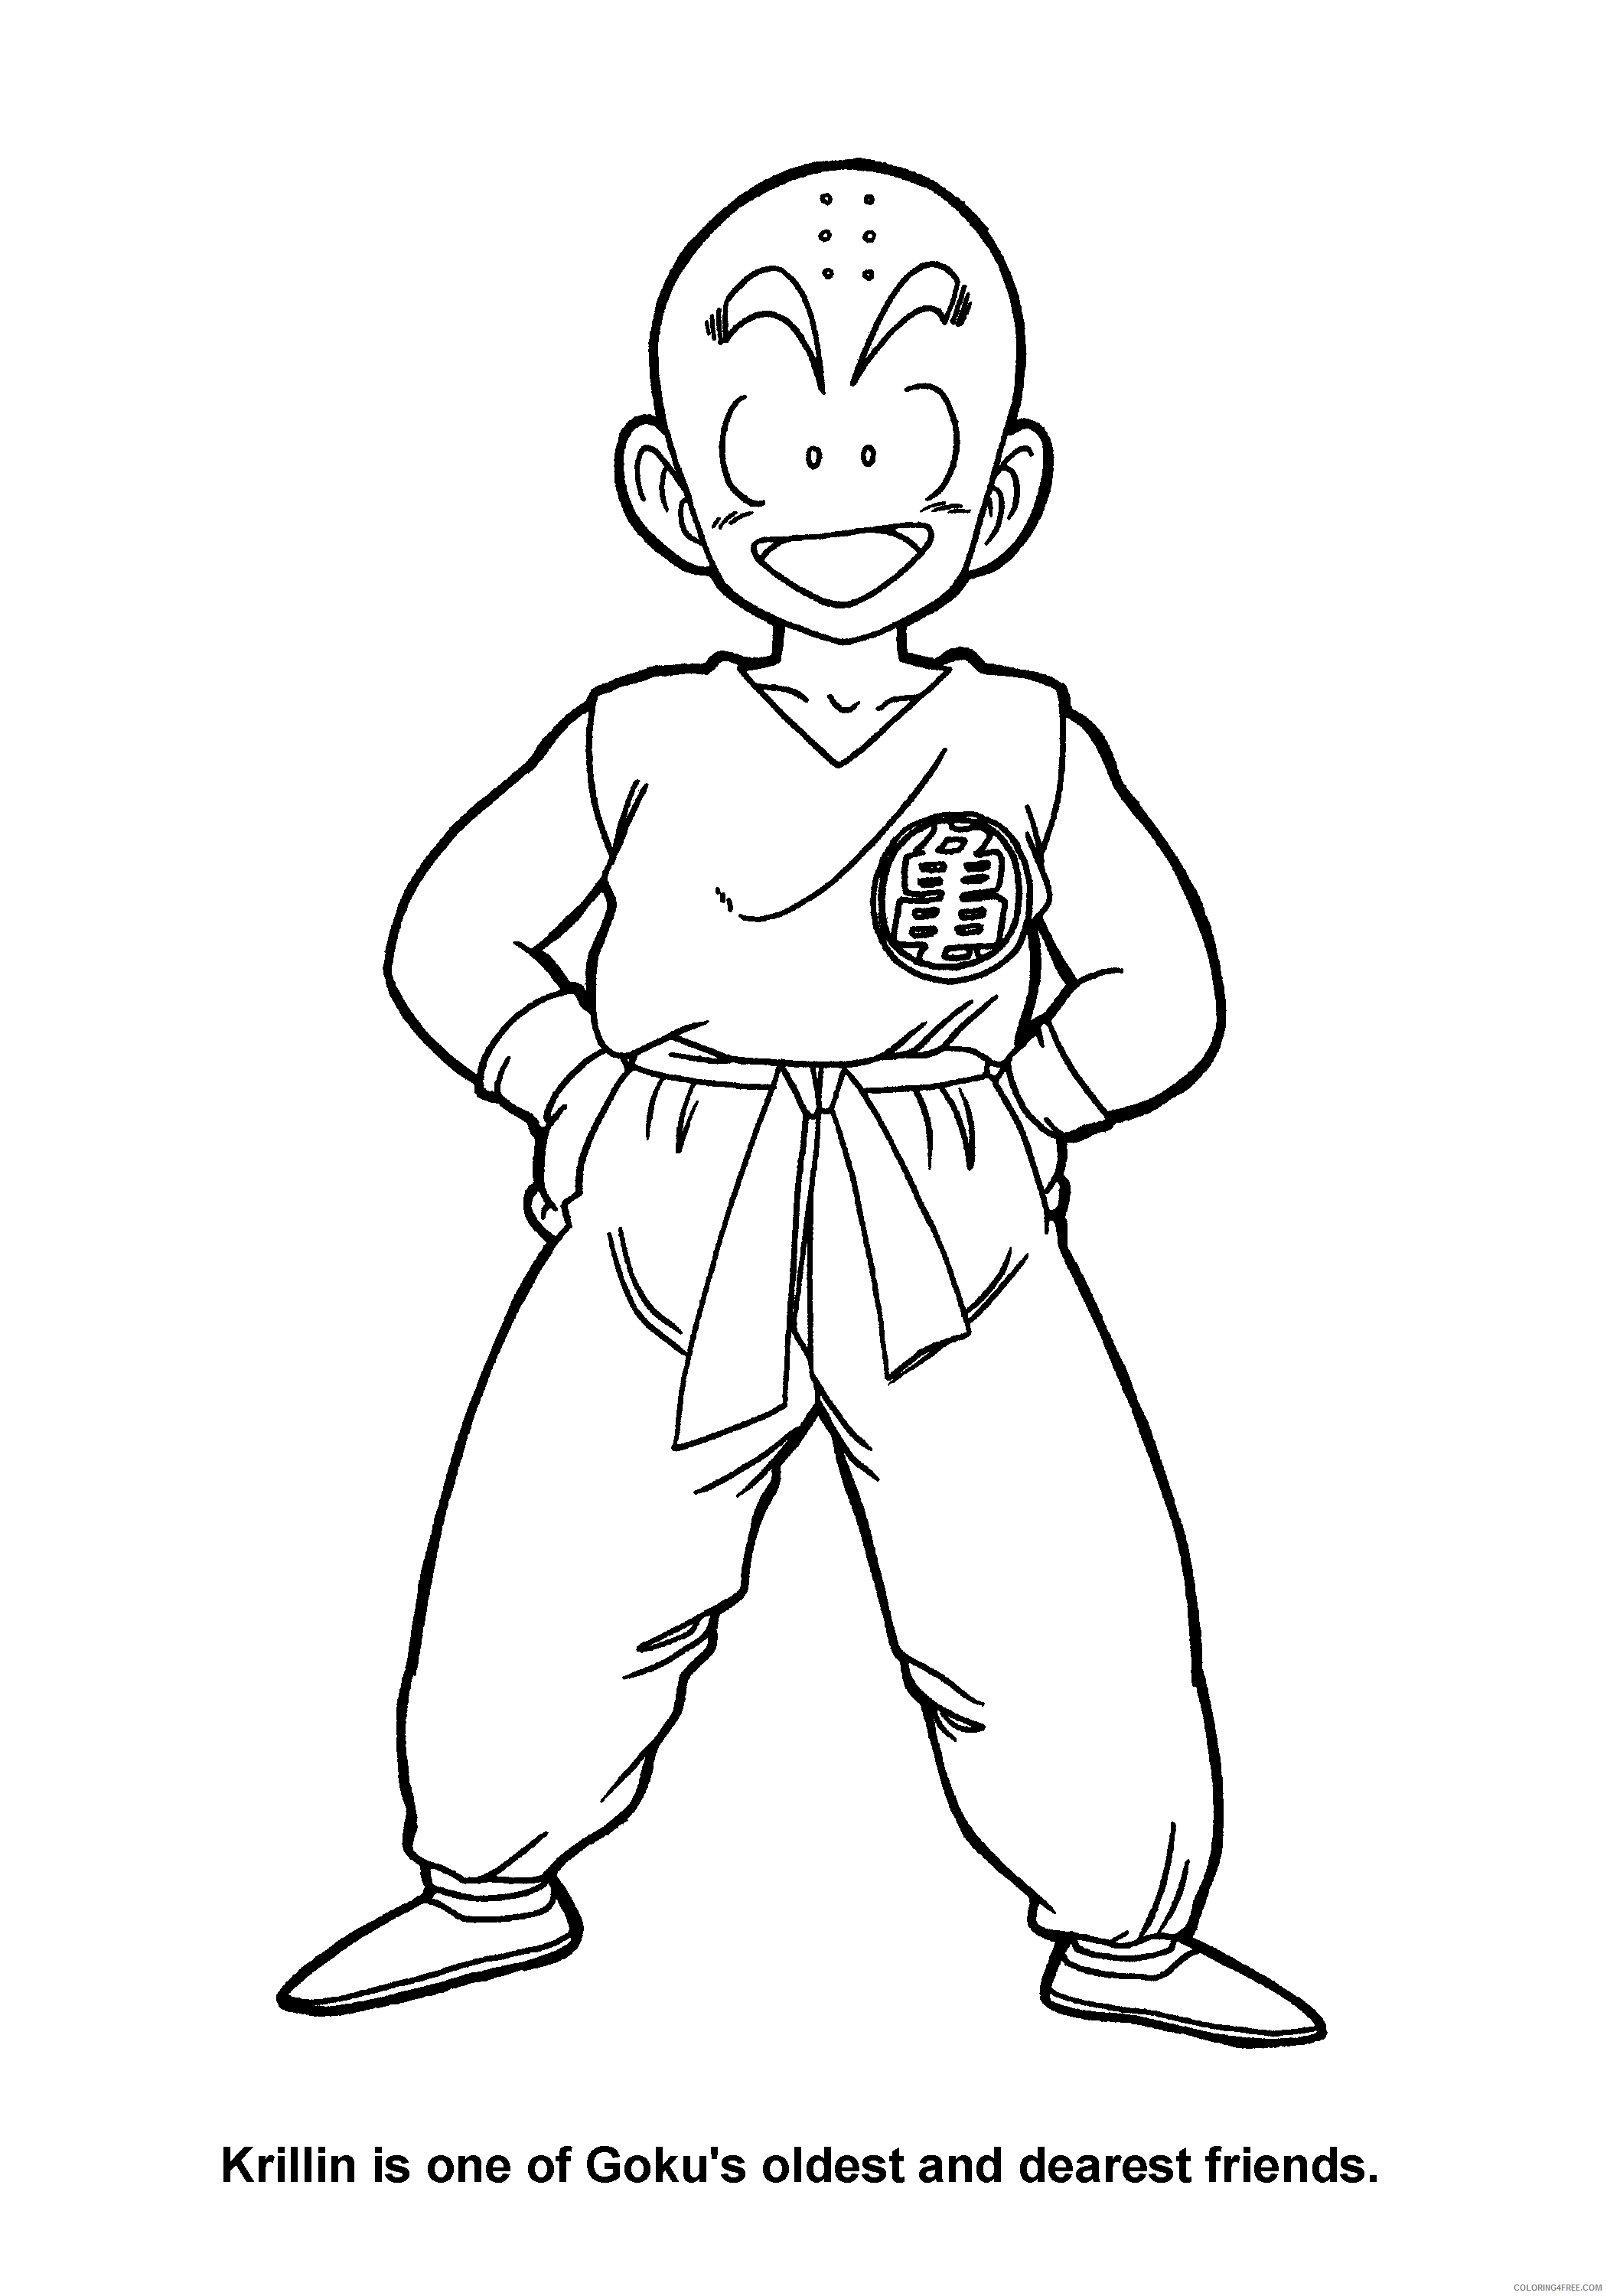 064 dragon ball z krillin is one of gokus oldest and dearest friends Printable Coloring4free